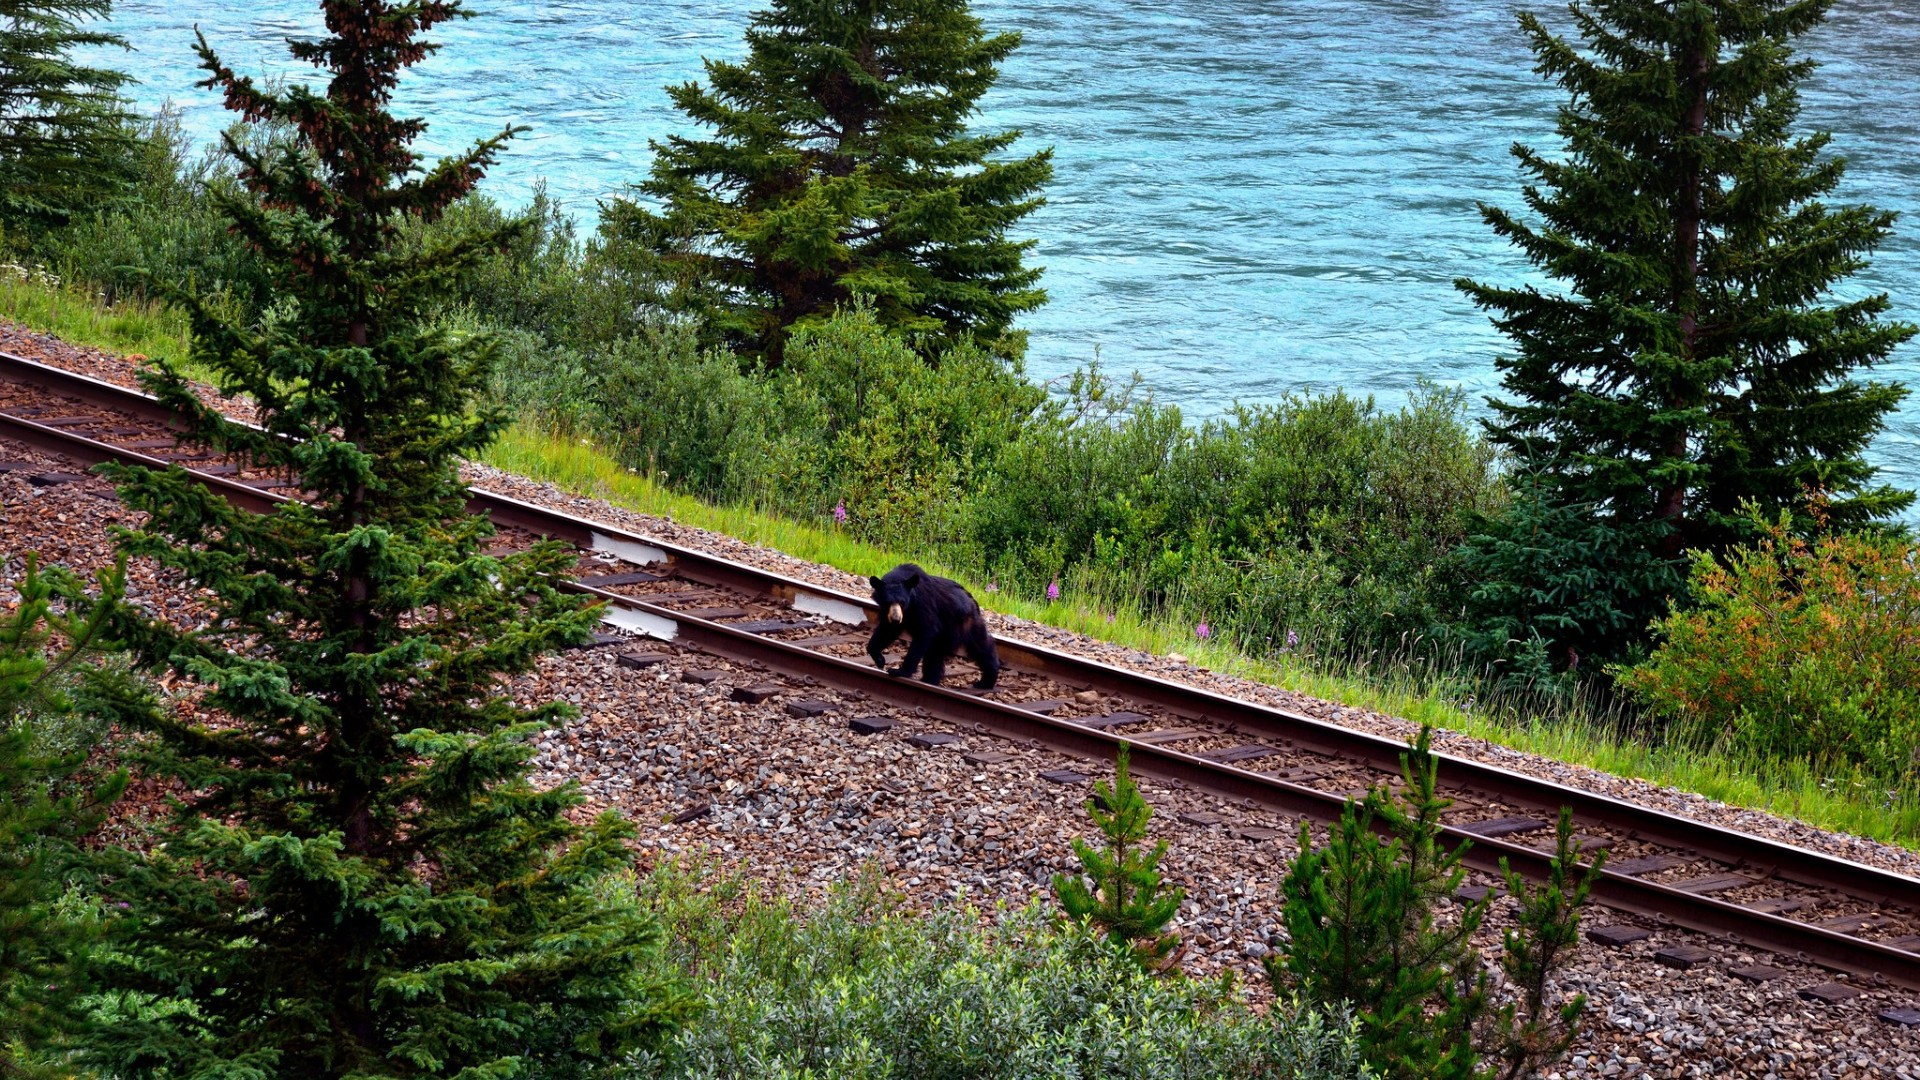 Bear on railway tracks